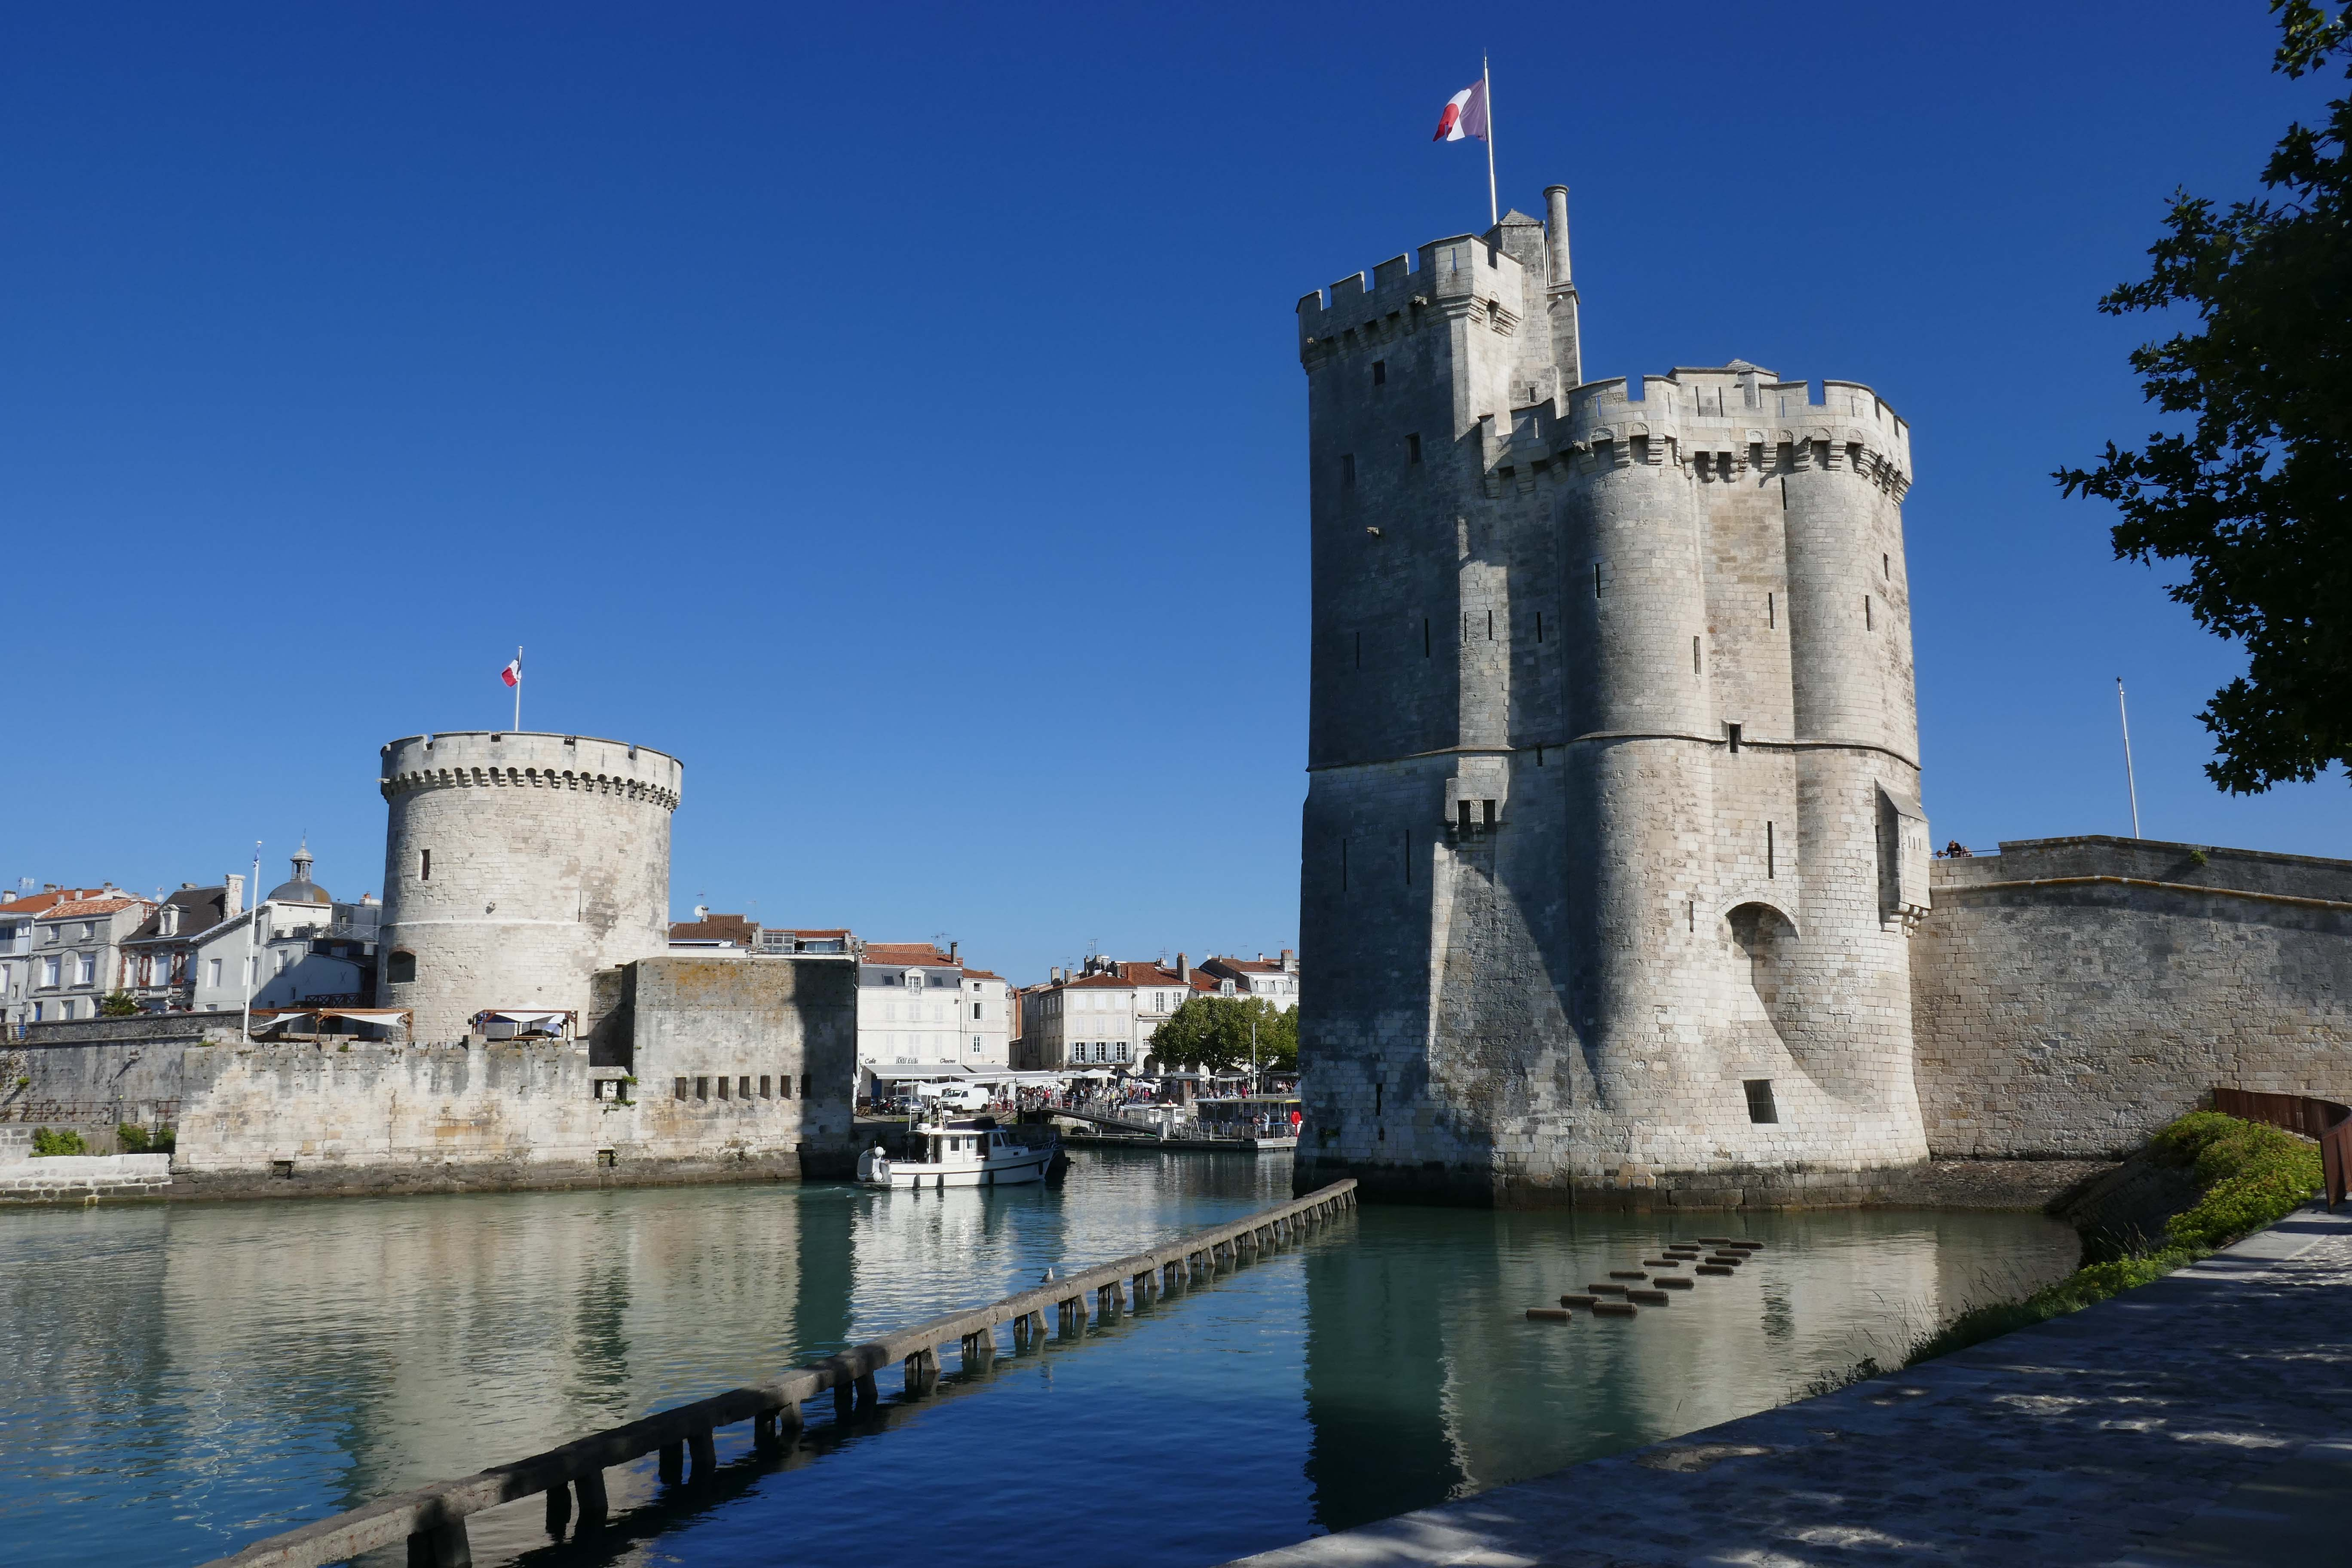 The iconic harbour towers of La Rochelle